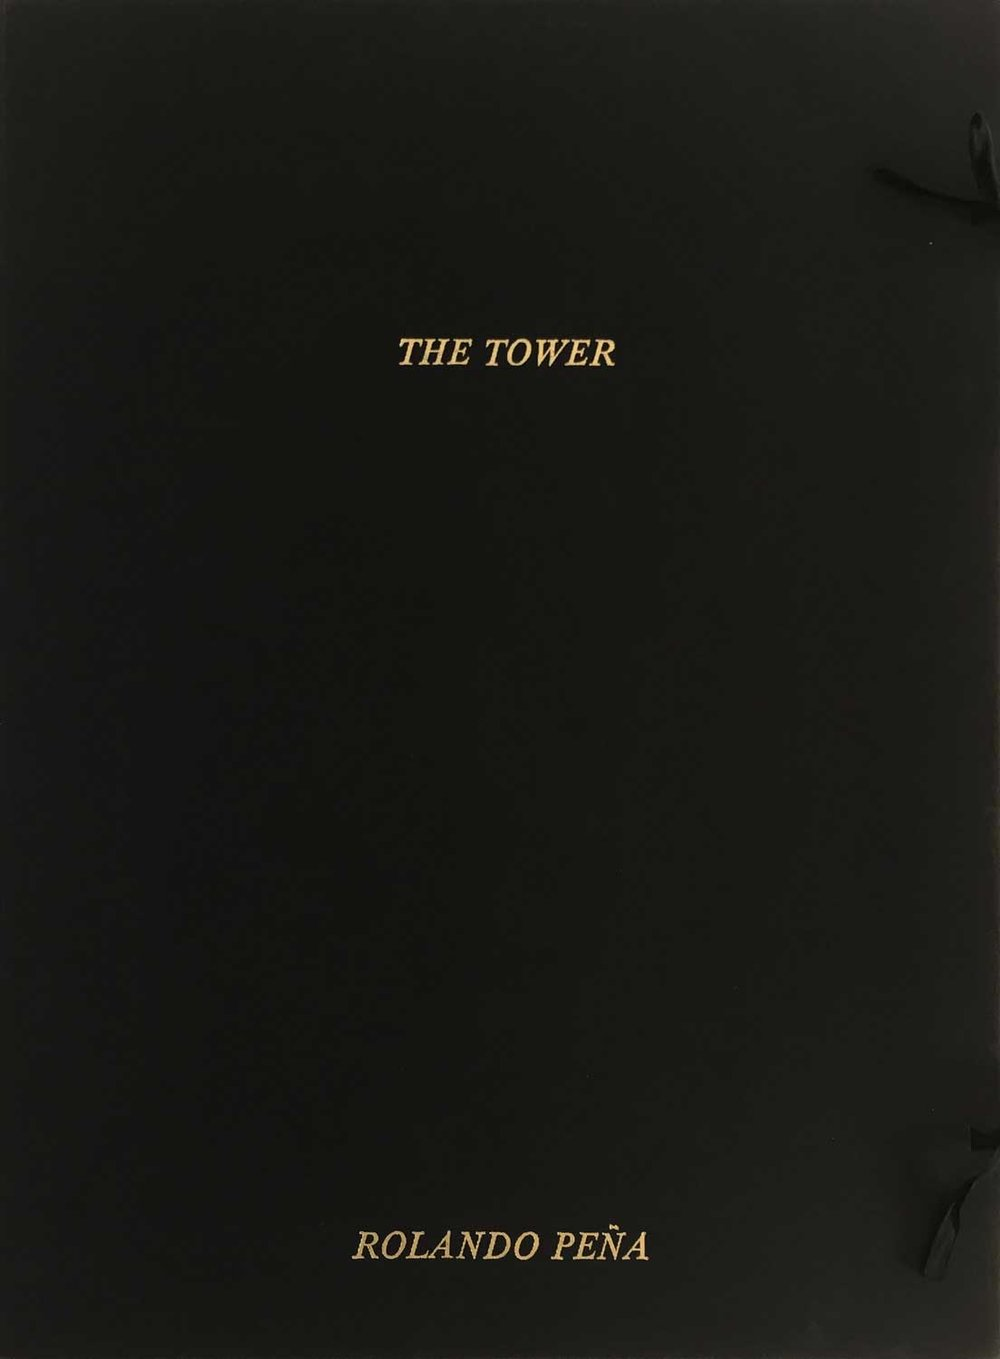 Rolando-Peña_01_Solo_The-Tower_Photo-Silkscreens_1982.jpg